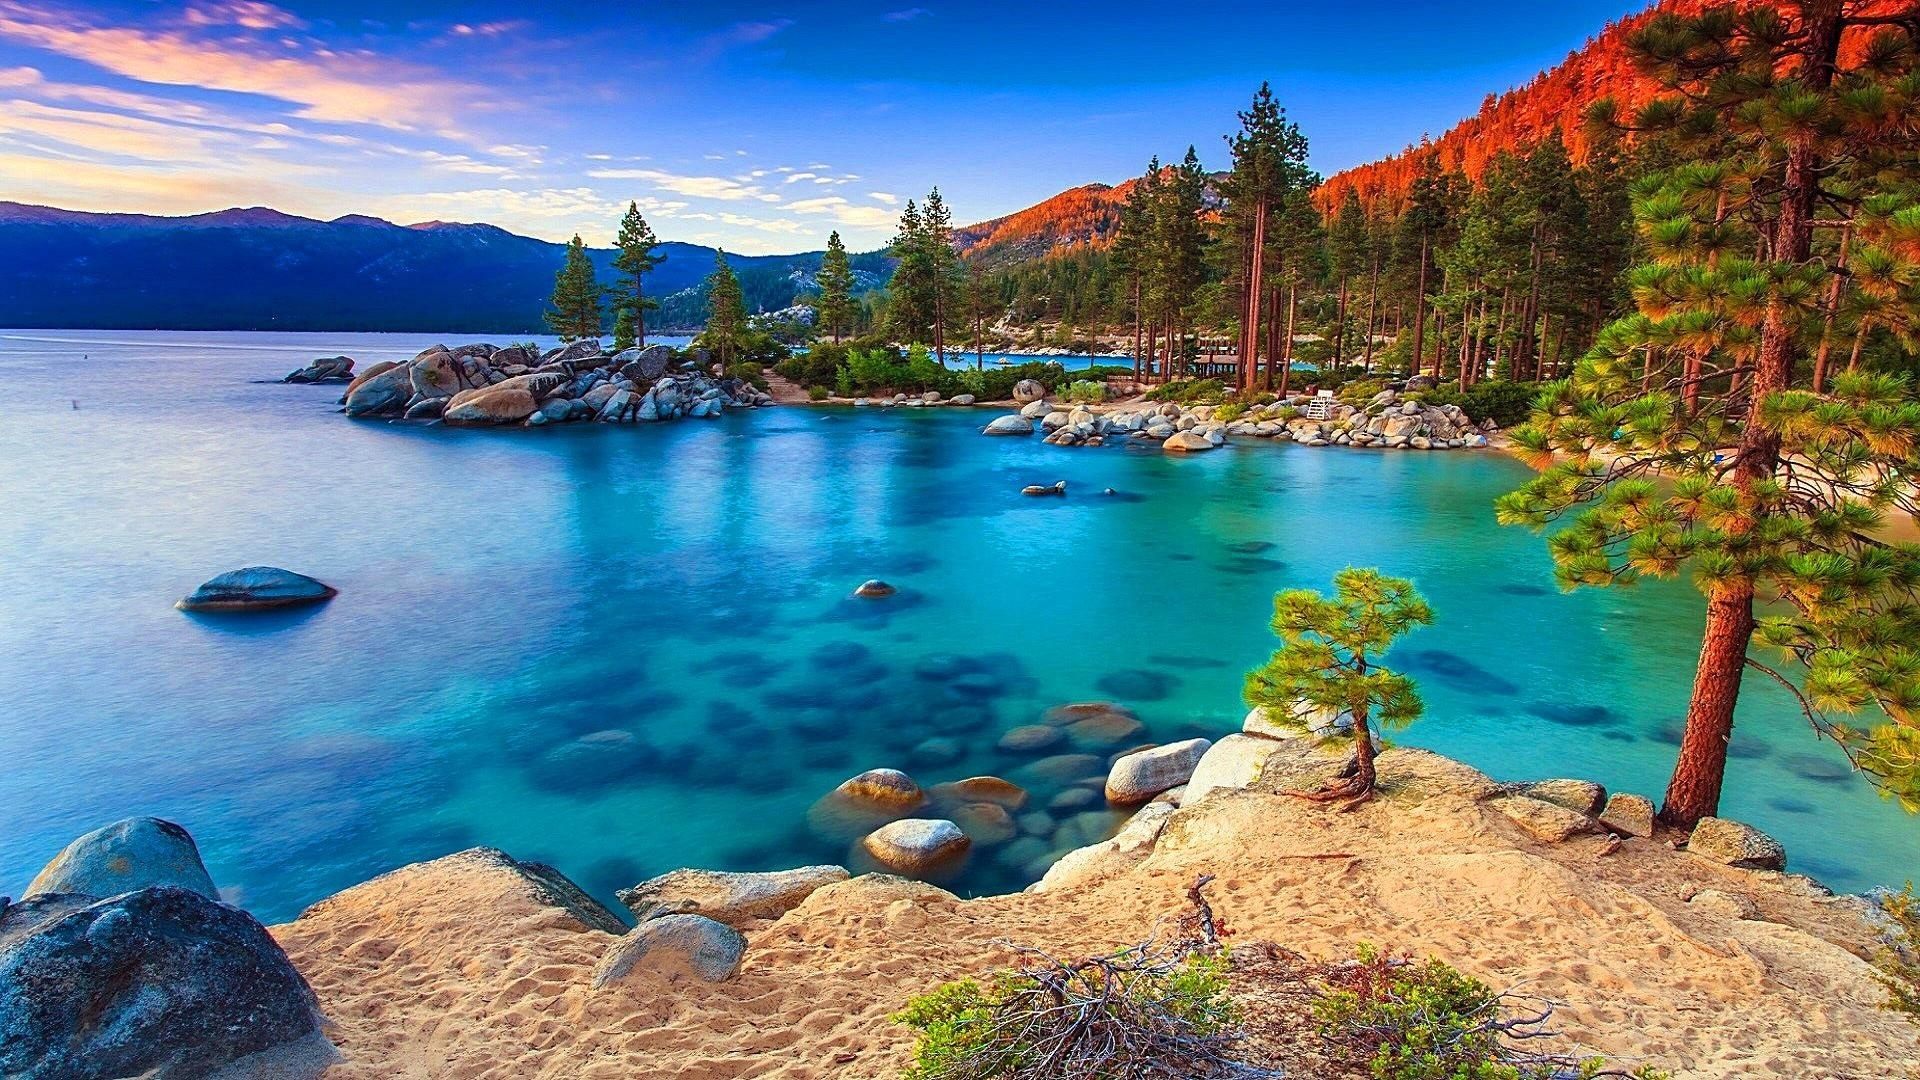 Lake Tahoe wallpaper for computer